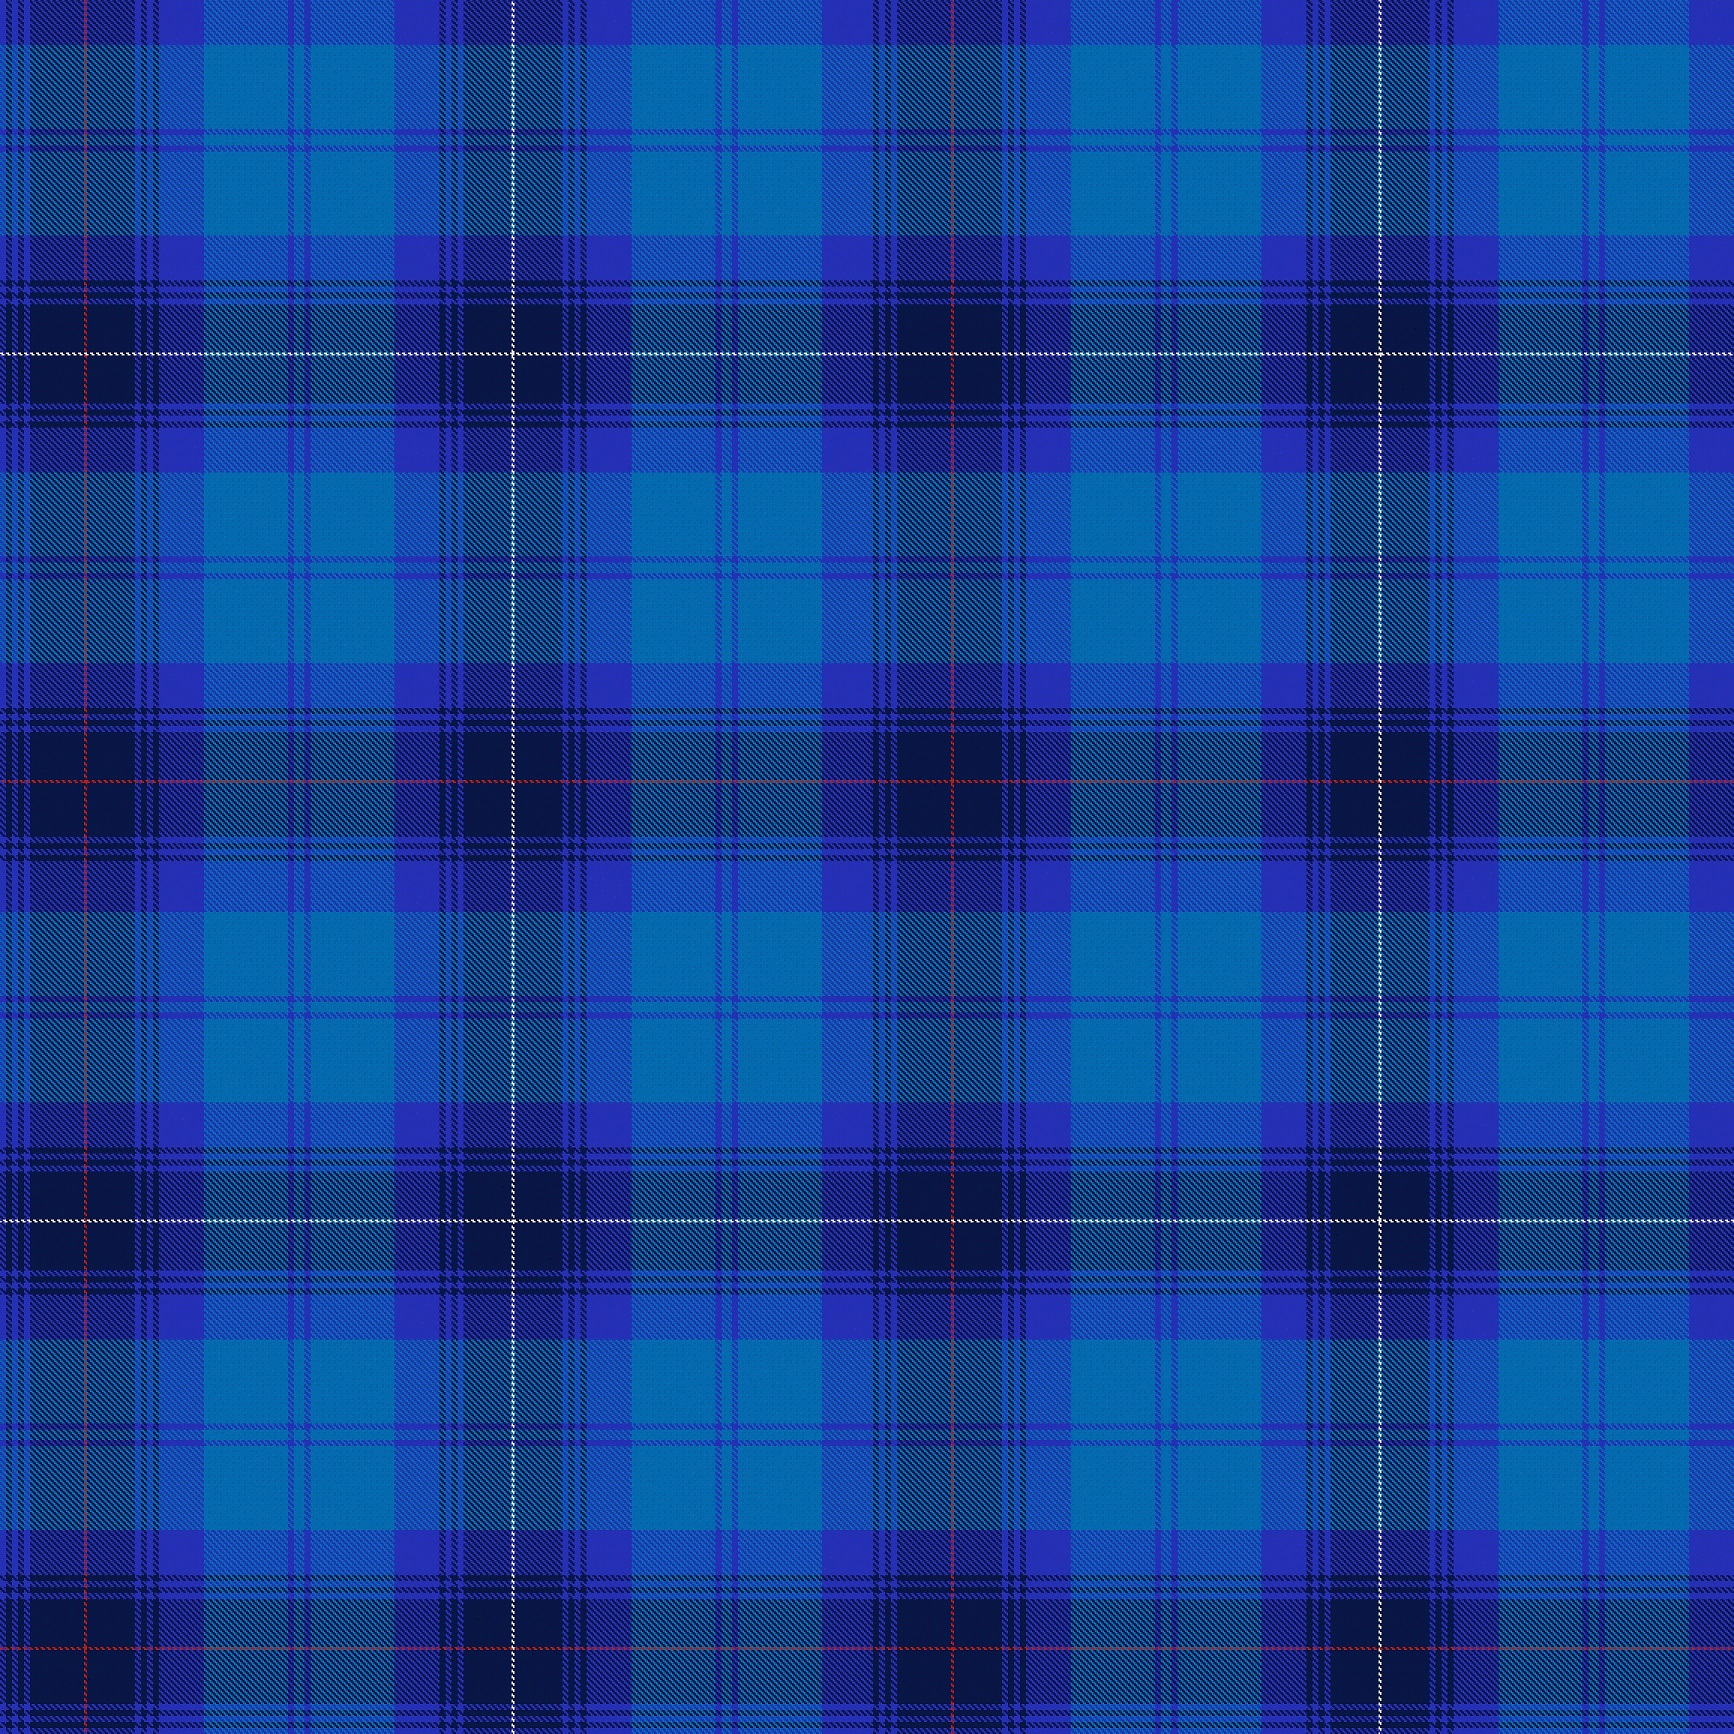 The Glen Moyer personal tartan - now awaiting official registration with the Scottish Register of Tartans.